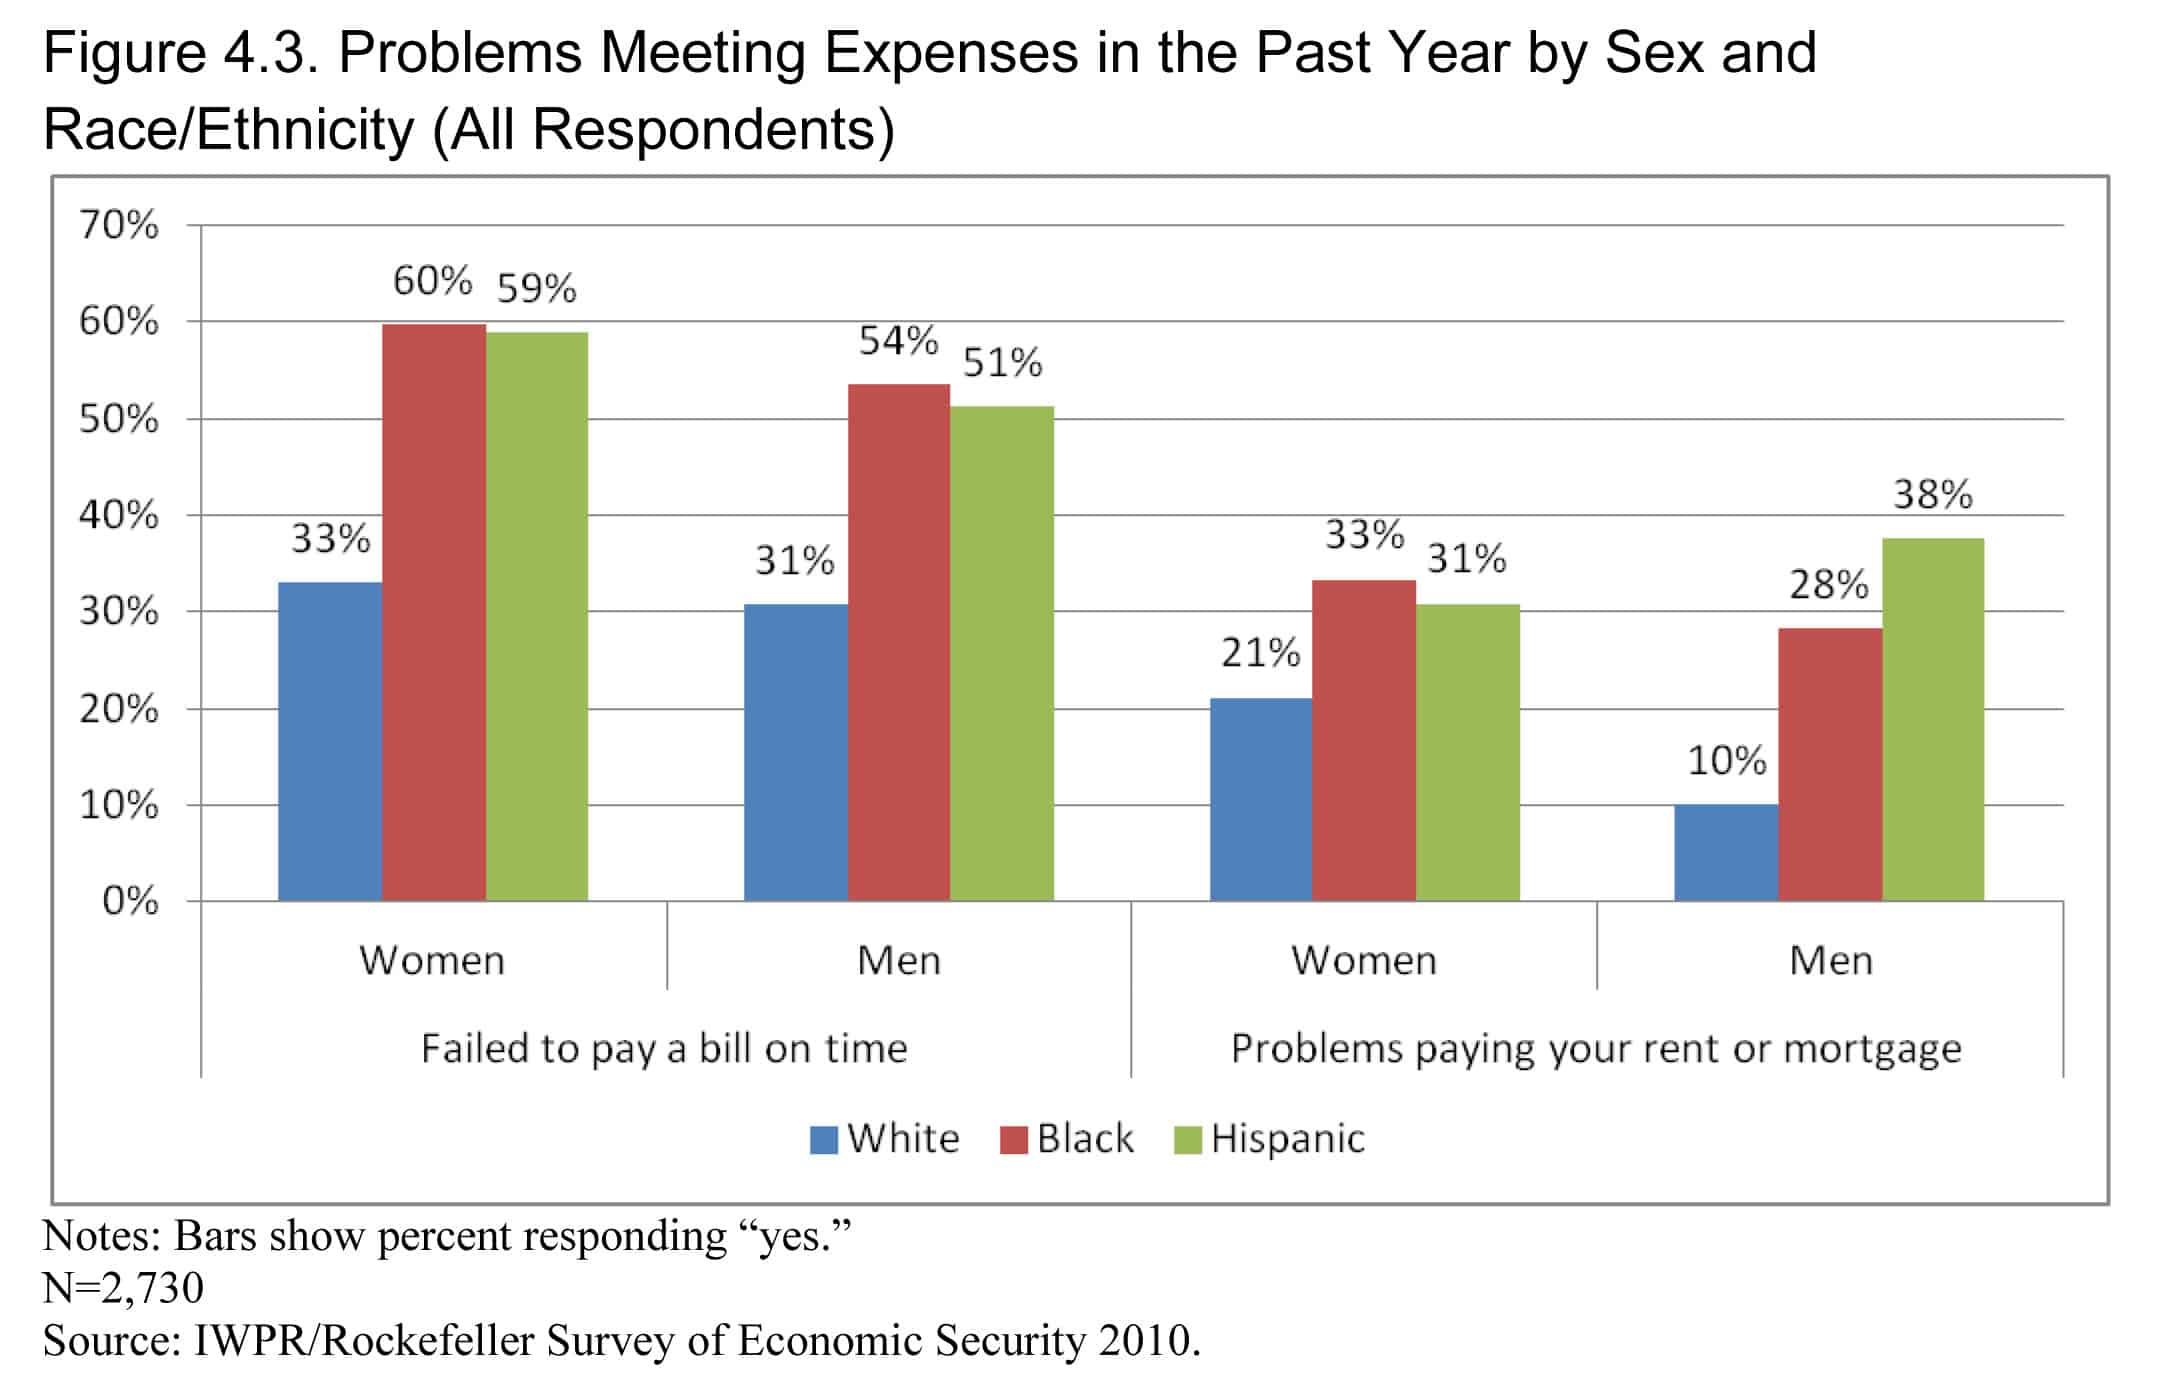 Problems Meeting Expenses in the Past Year by Sex and Race/Ethnicity